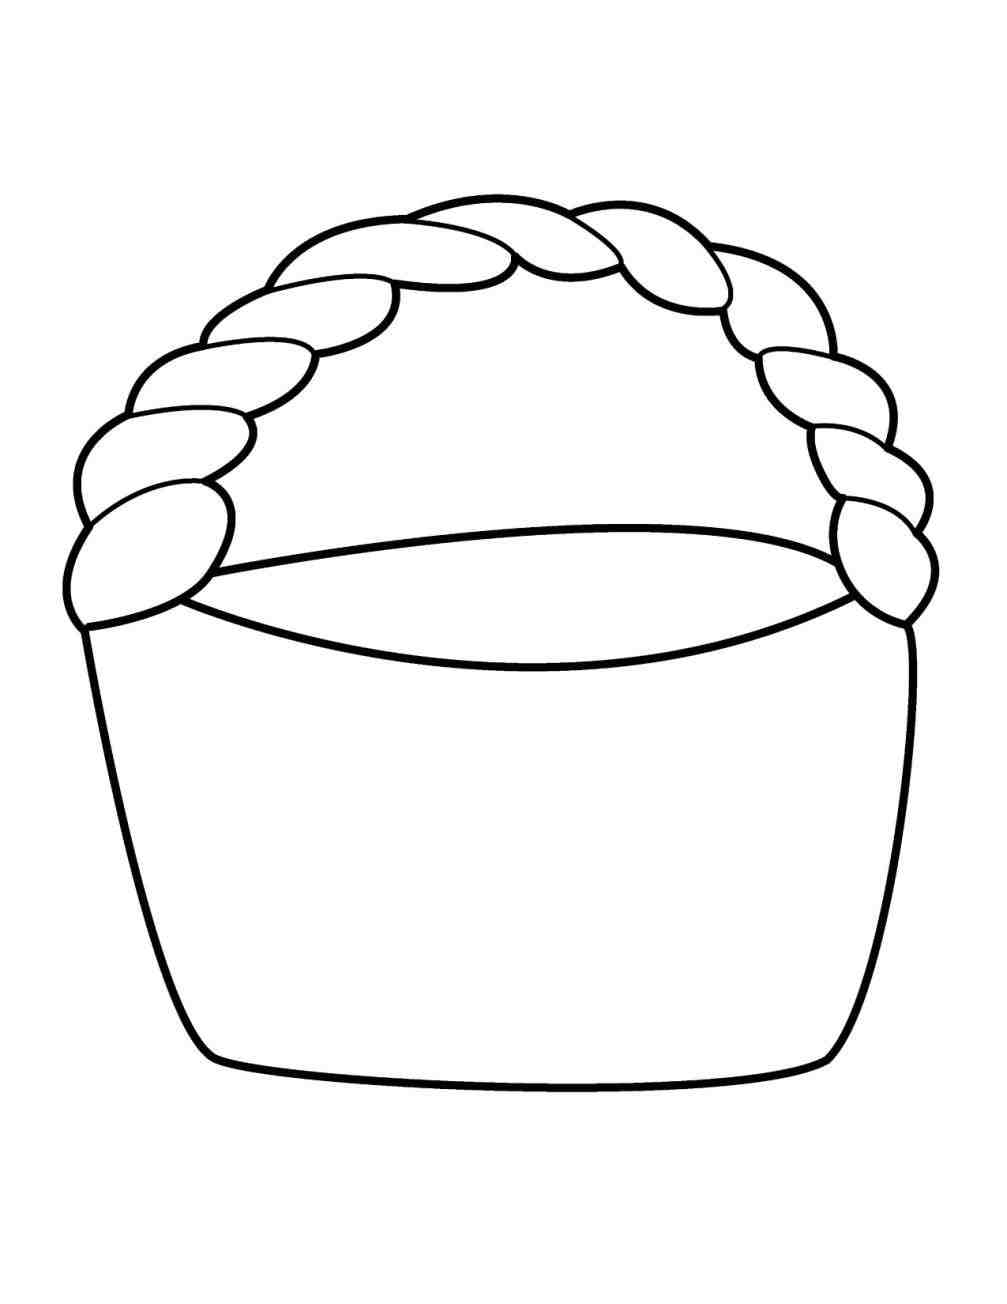 Basket simple clipart vector library library Basket clipart simple, Basket simple Transparent FREE for download ... vector library library